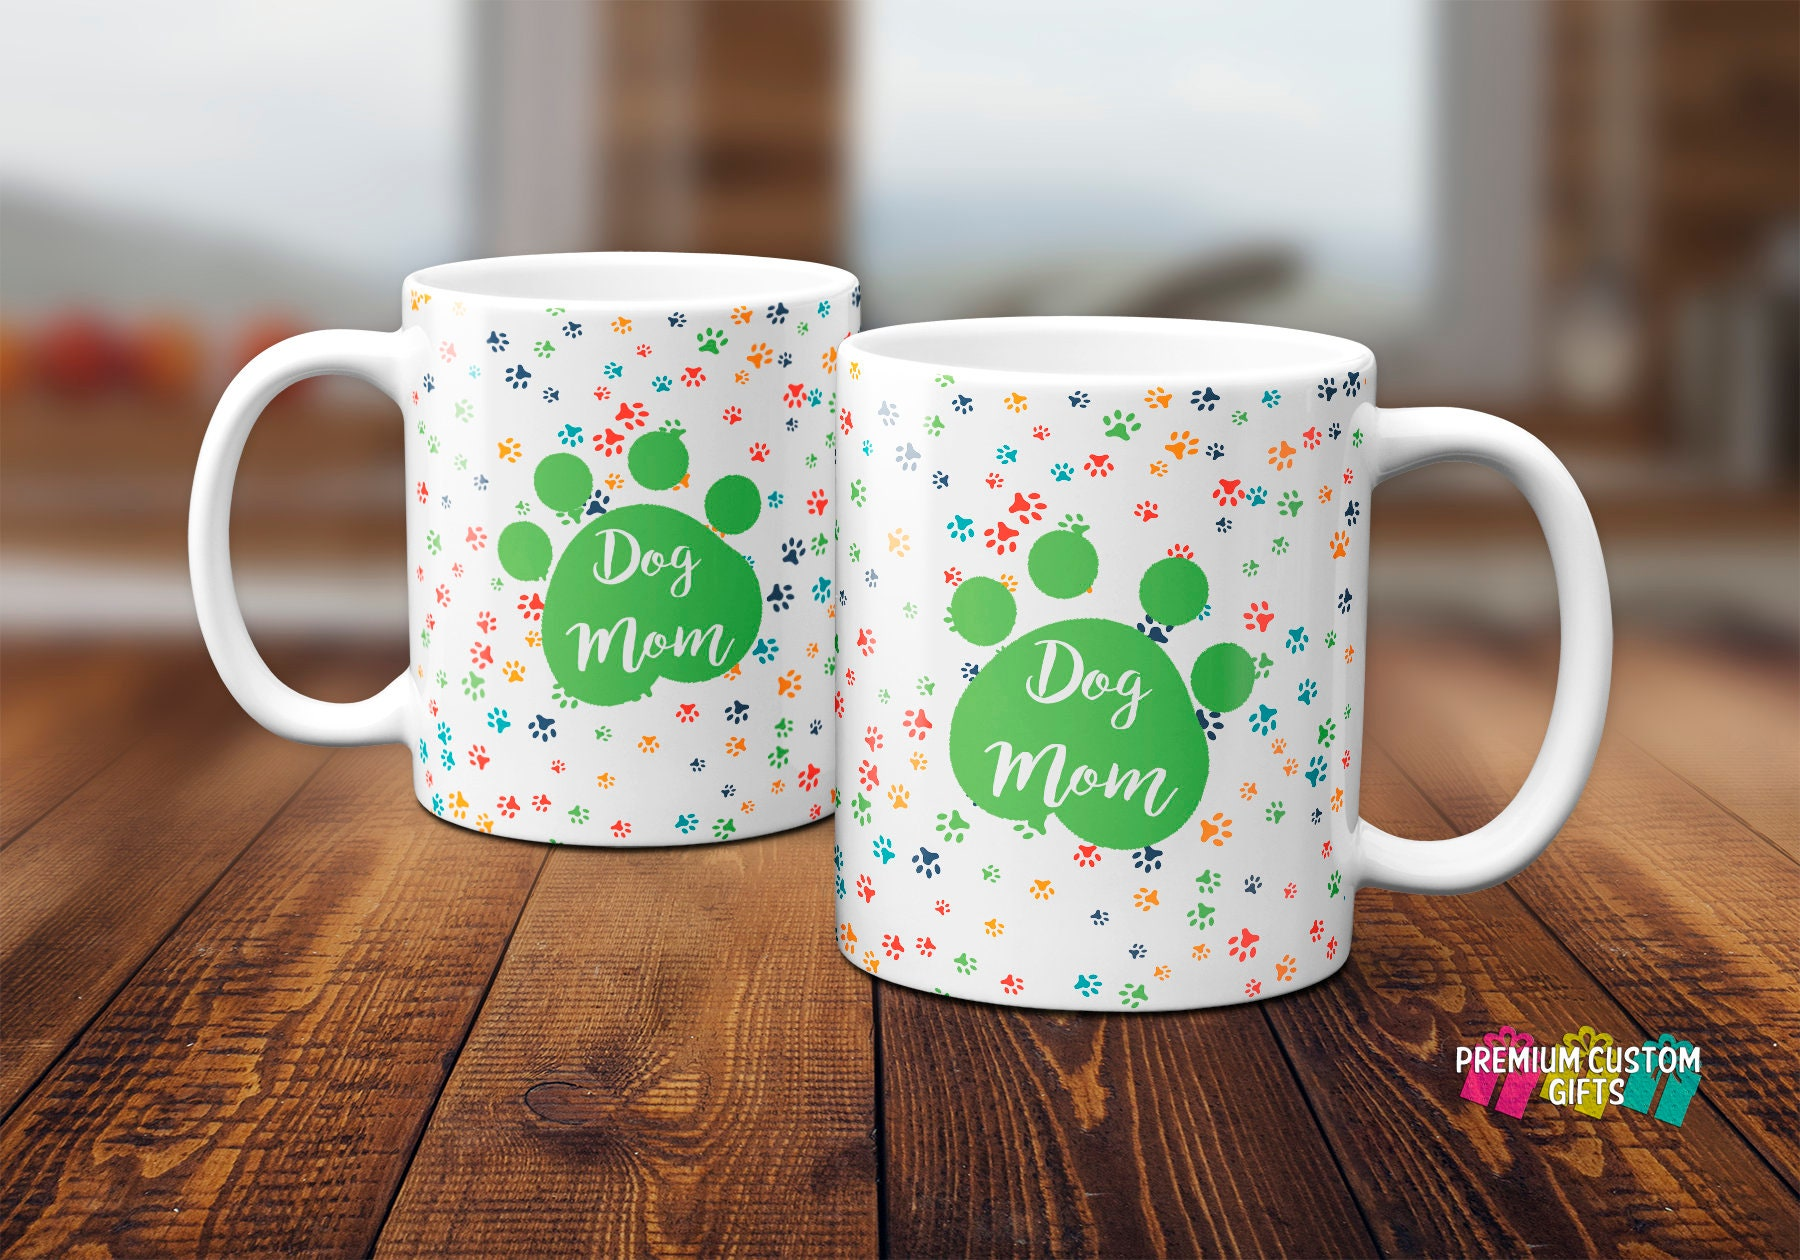 The Mug Coffee >> Dog Mom Coffee Mug Dog Mom